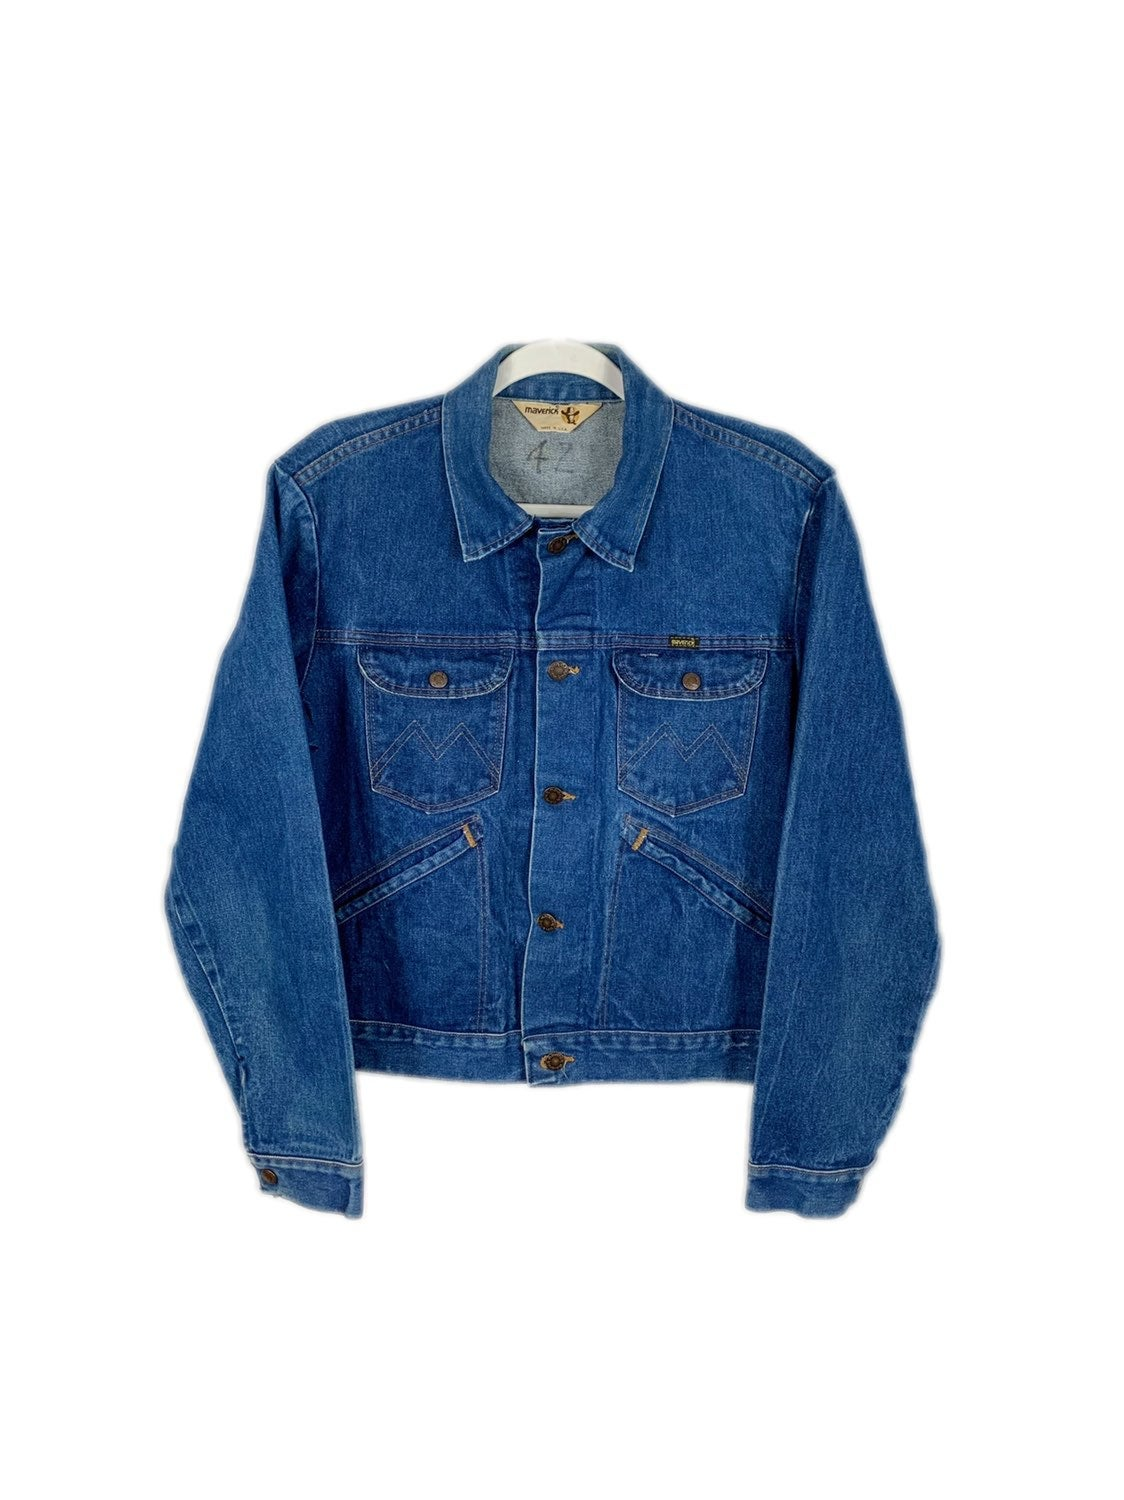 80's Maverick Vintage Denim Jacket